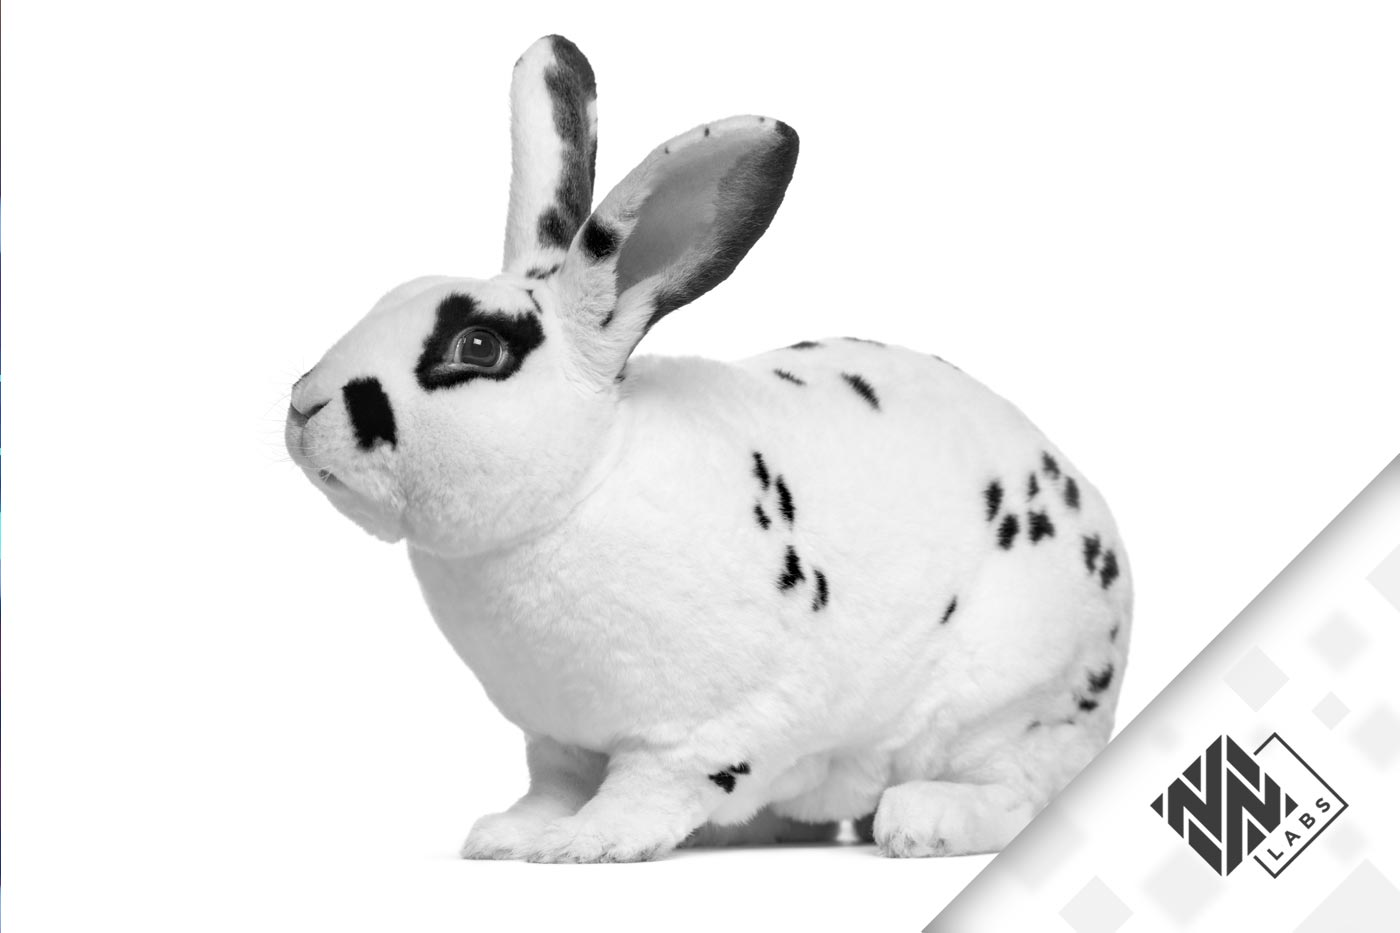 Bad Rabbit Highlights Employees' Role in Cyber Security Attacks